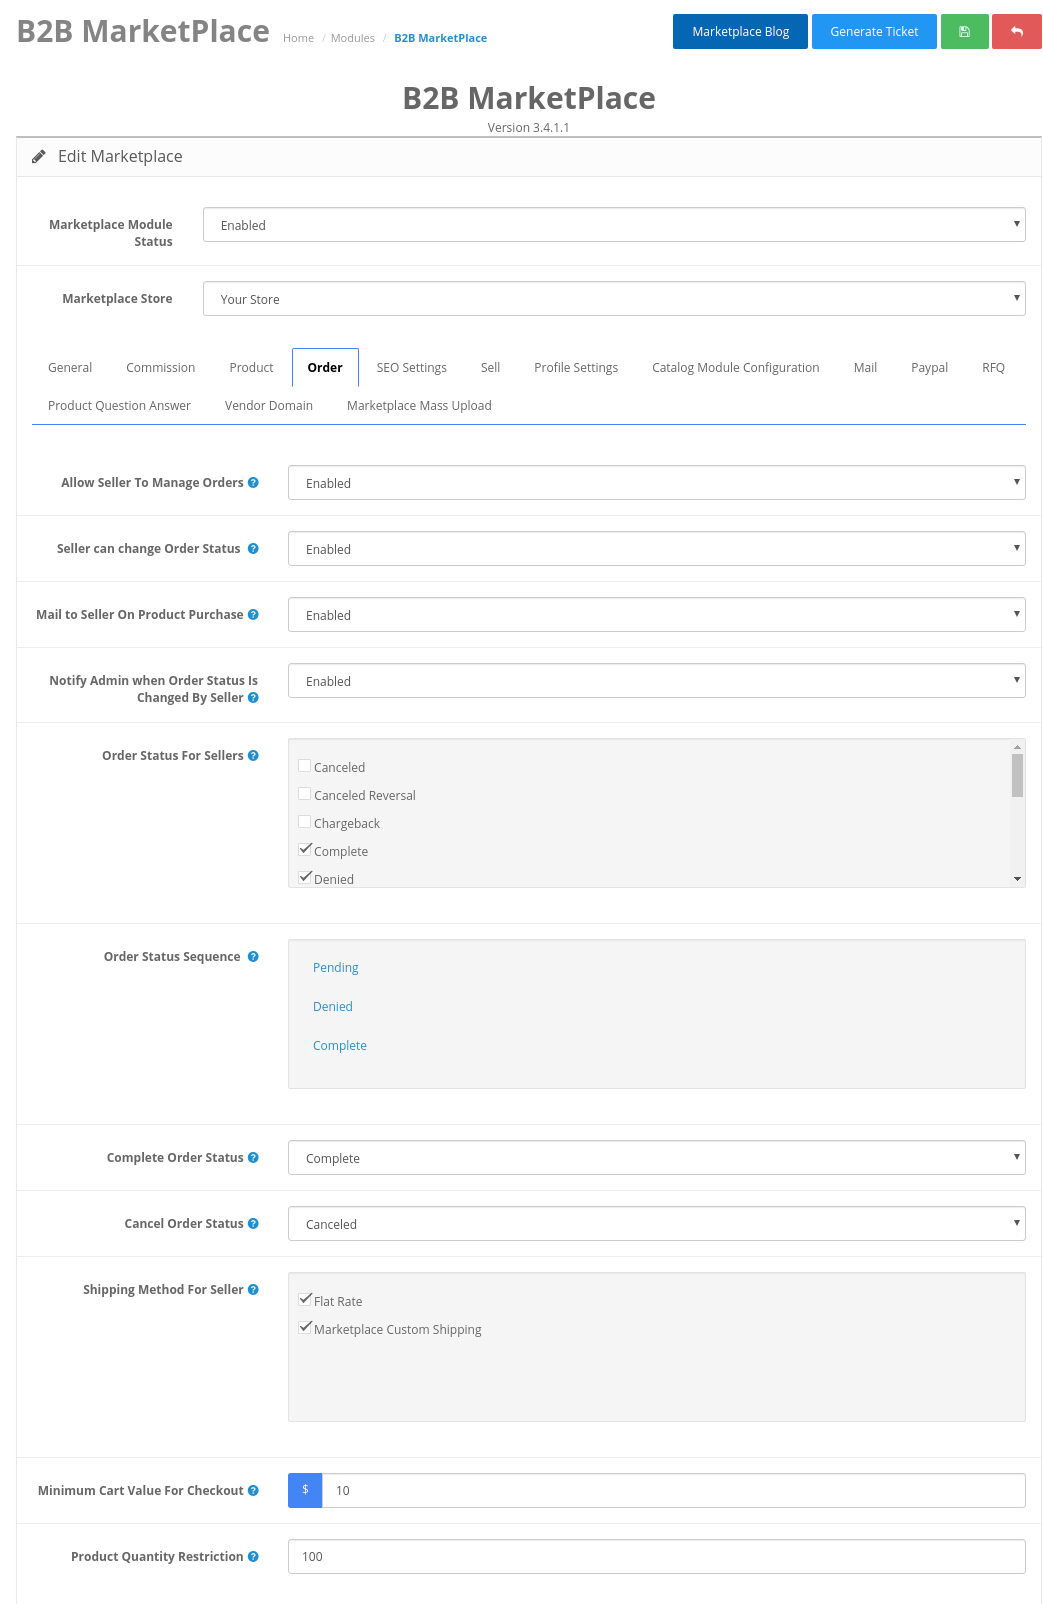 Opencart_B2B_Marketplace_order_configuration4-1.png-1